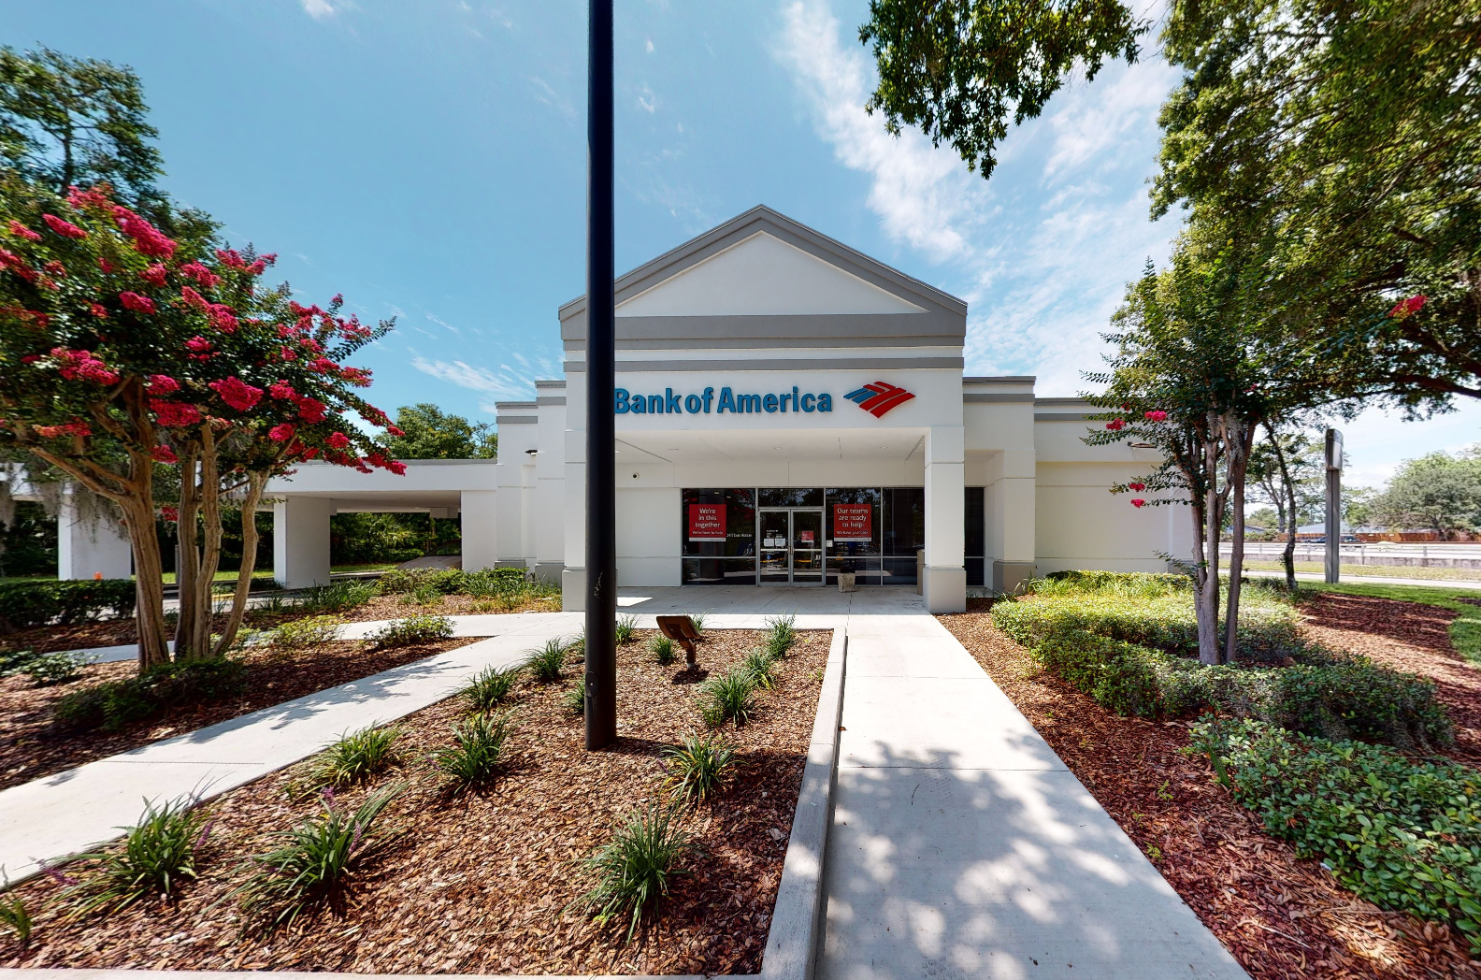 Bank of America financial center with drive-thru ATM | 4500 Wabash Ave, Jacksonville, FL 32210